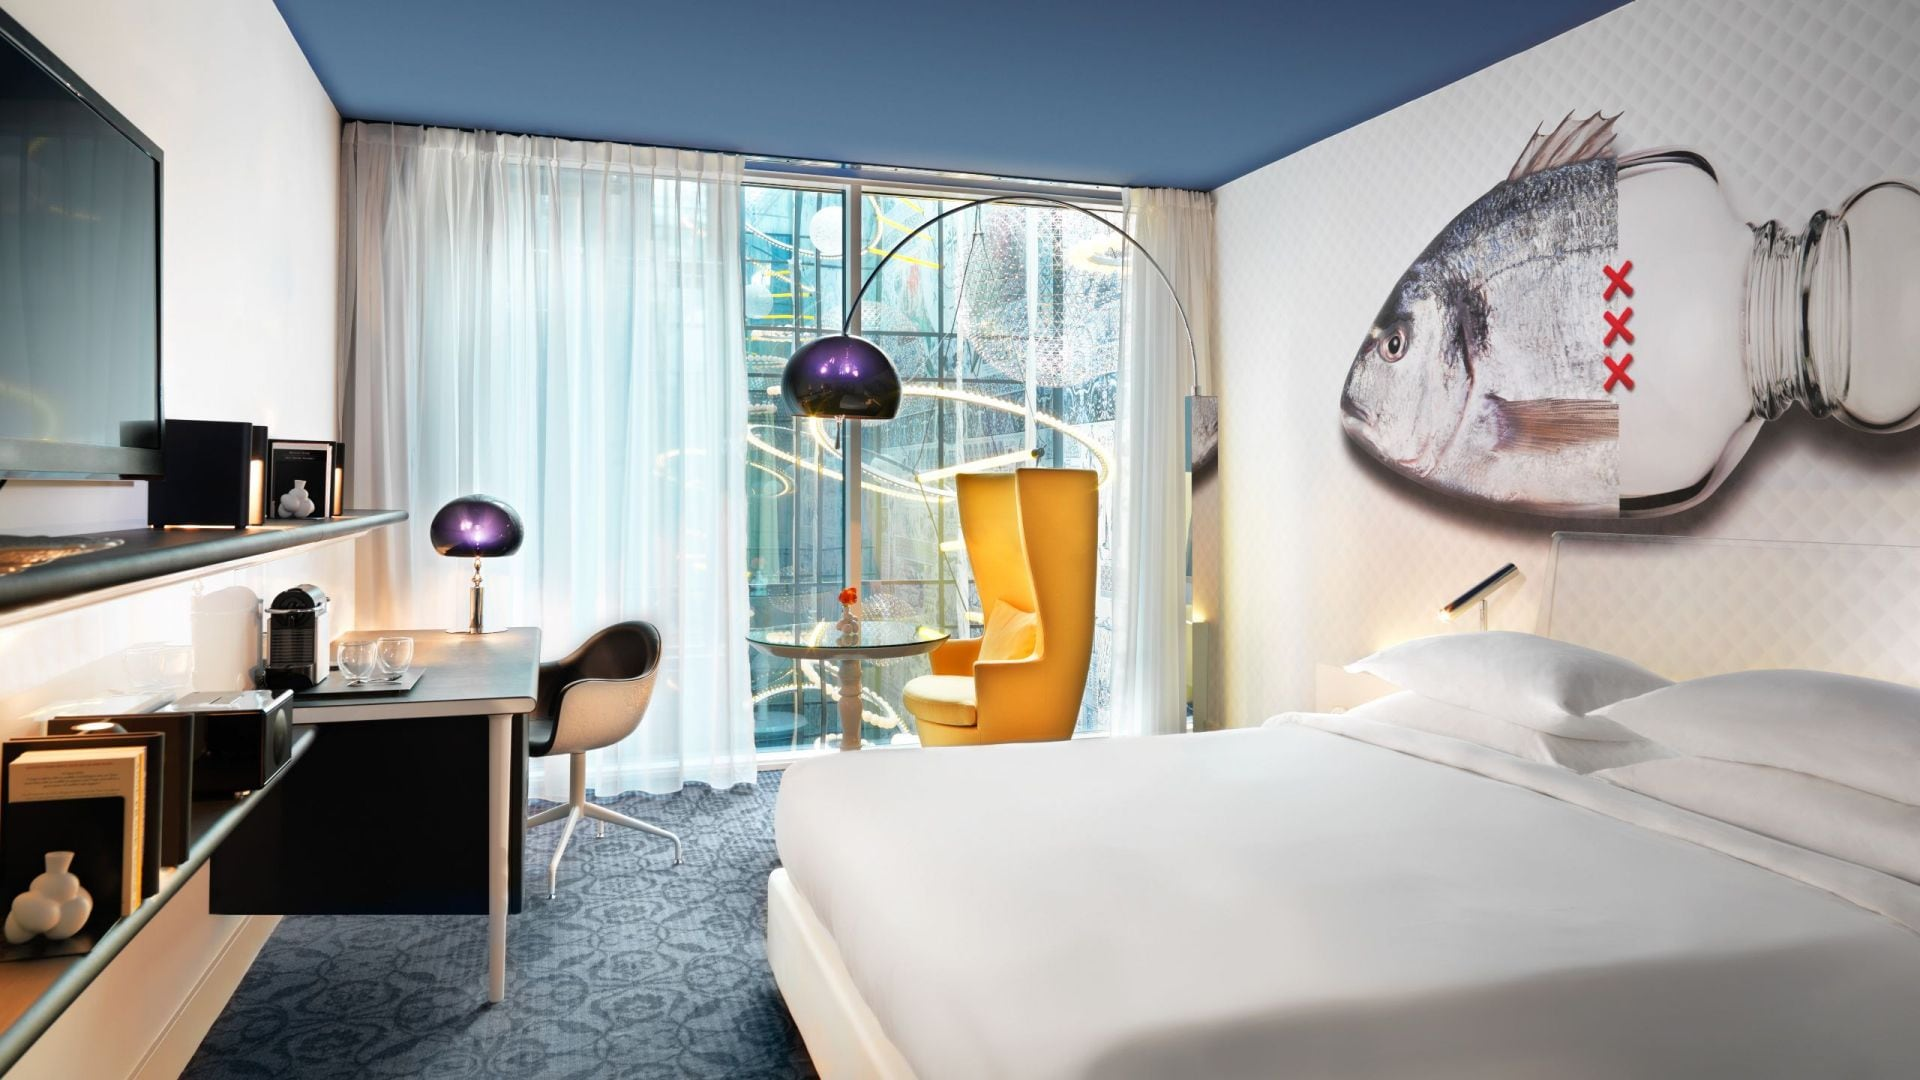 H En M Home Amsterdam Luxury Hotel On The Amsterdam Canals Andaz Amsterdam Prinsengracht